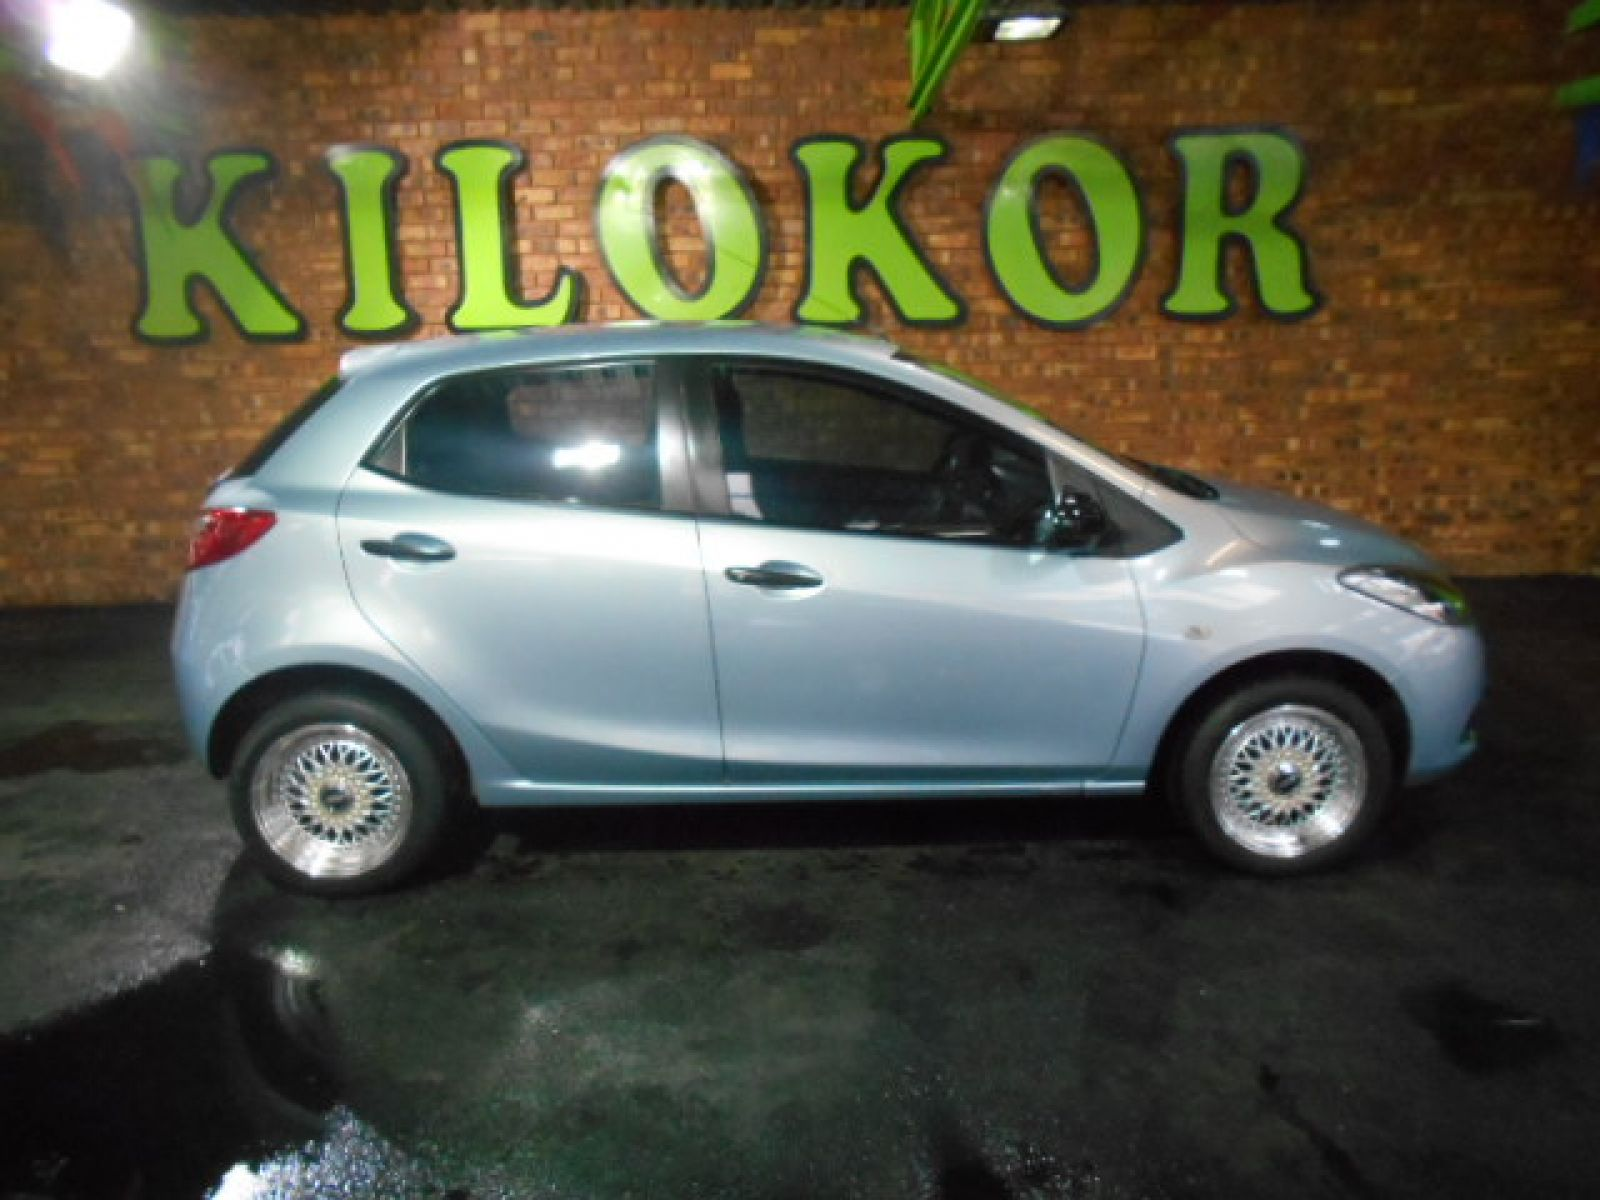 2011 Mazda 2 R 119 990 For Sale Kilokor Motors